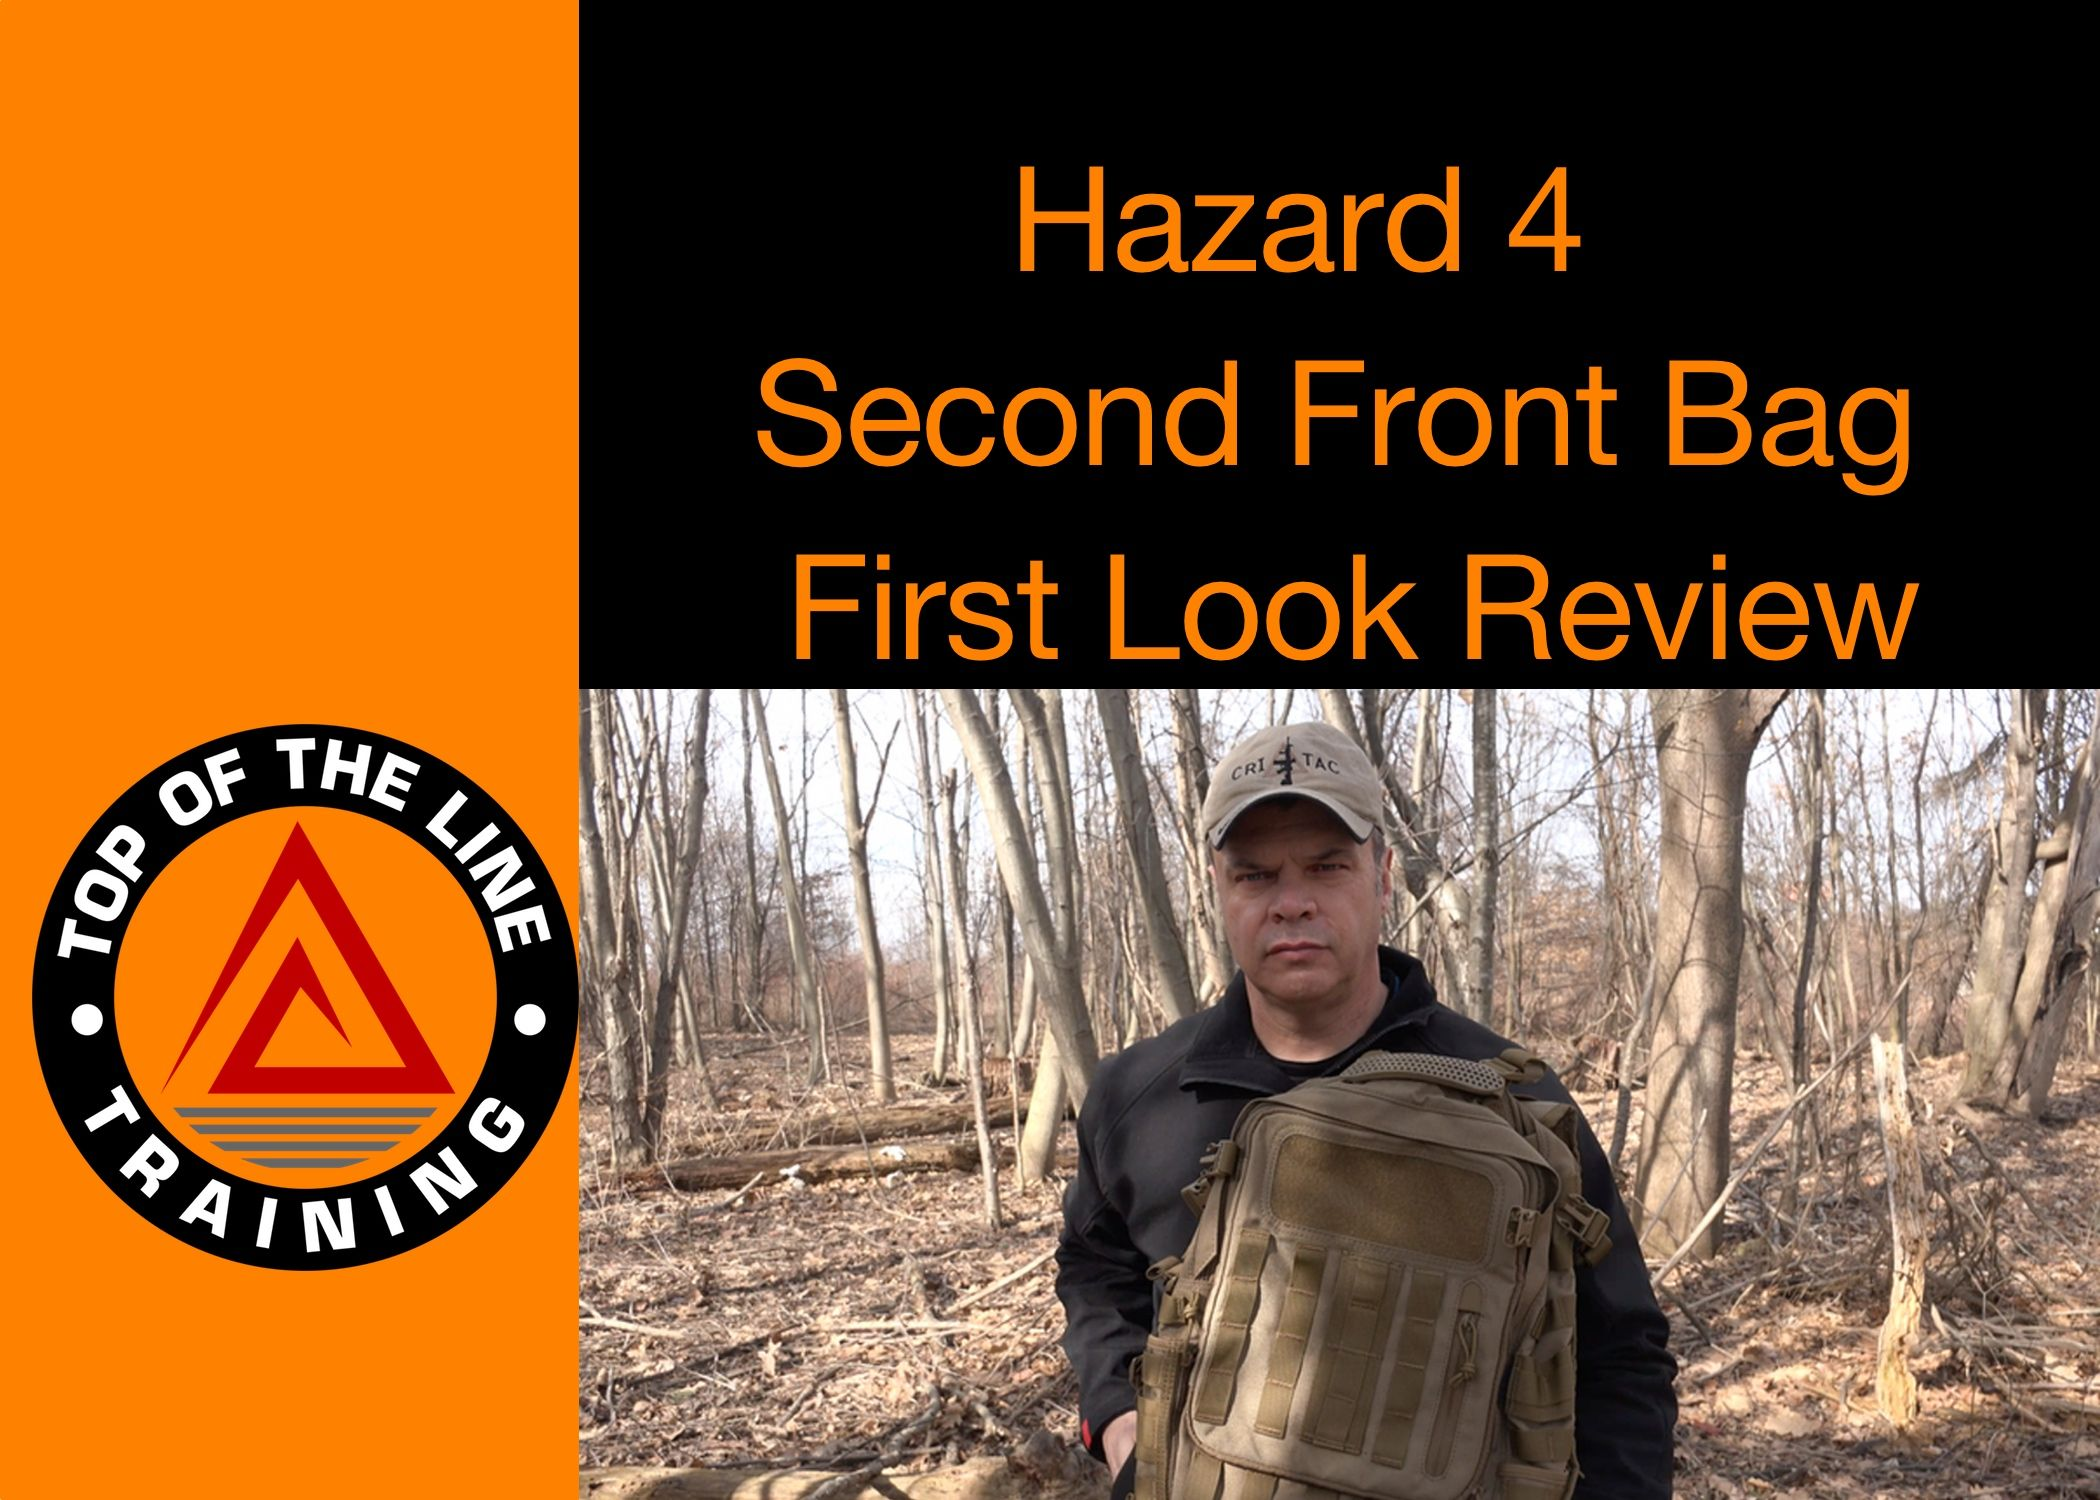 Check out my review on the Hazard 4 Bag...Second Front